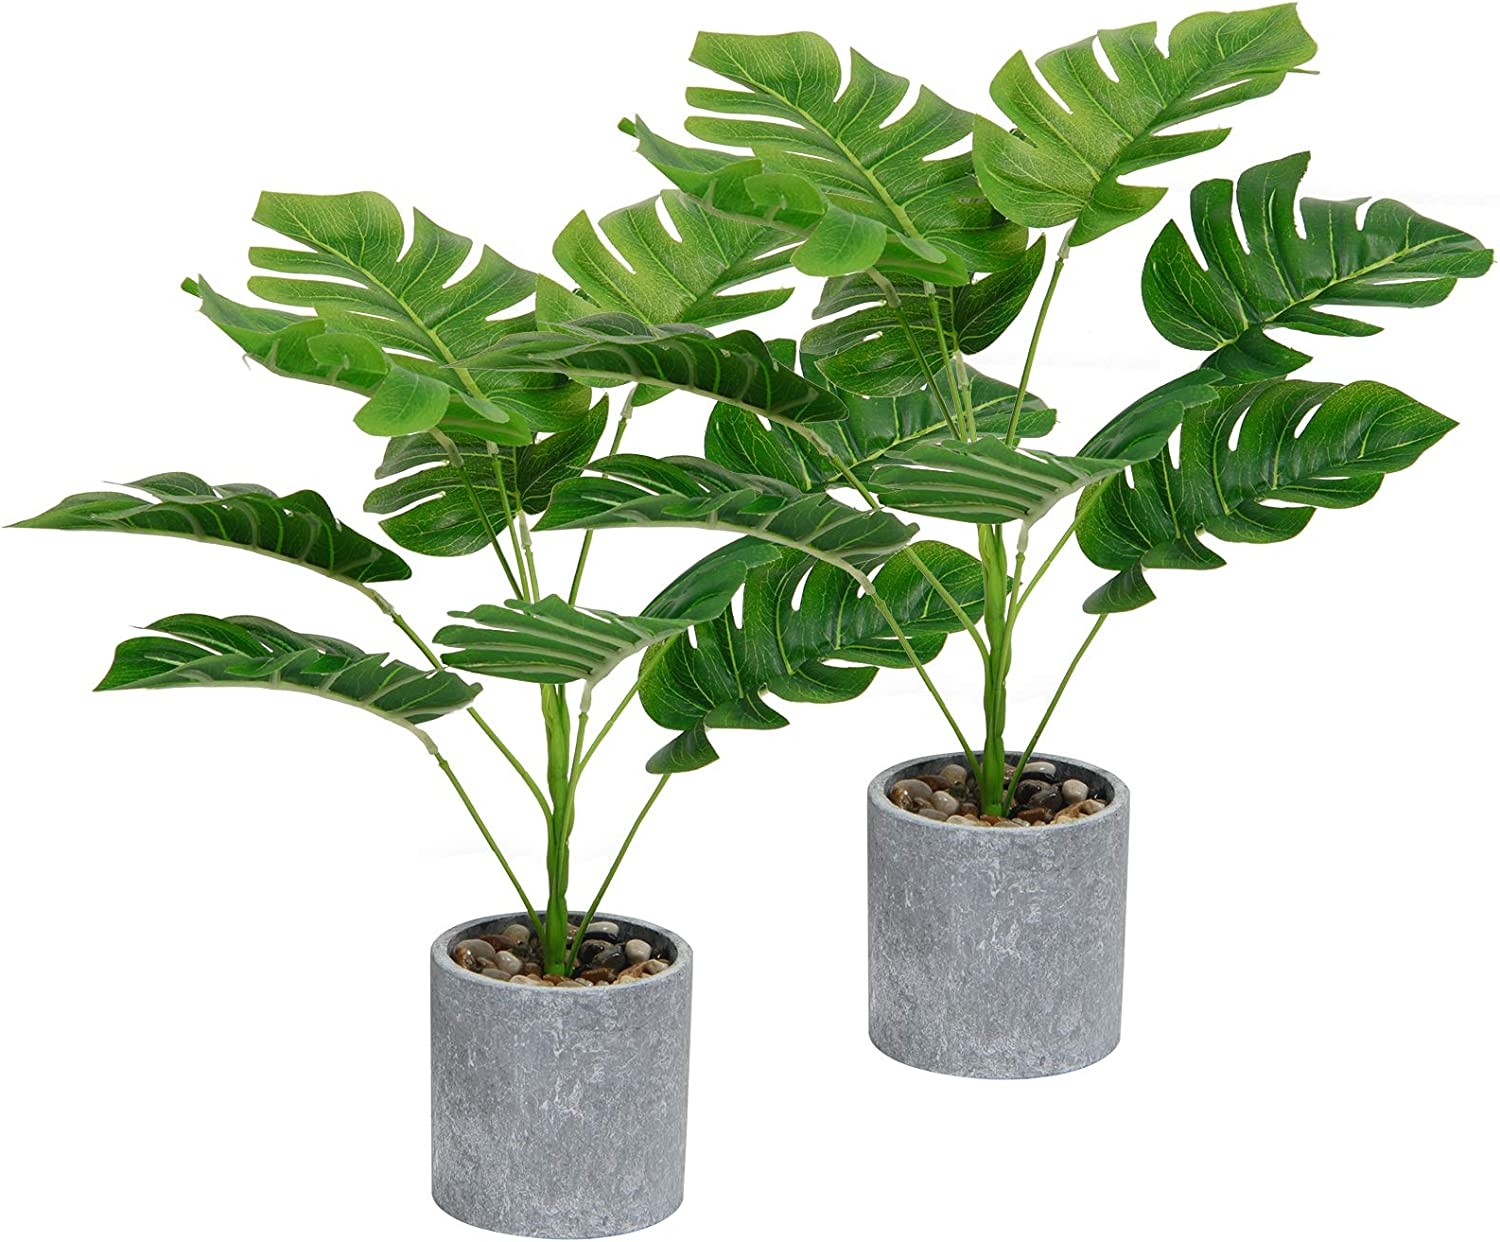 U'Artlines Set Our shop OFFers the best service of 55% OFF 2 Artificial Plants Potted Topia Greenery Fake